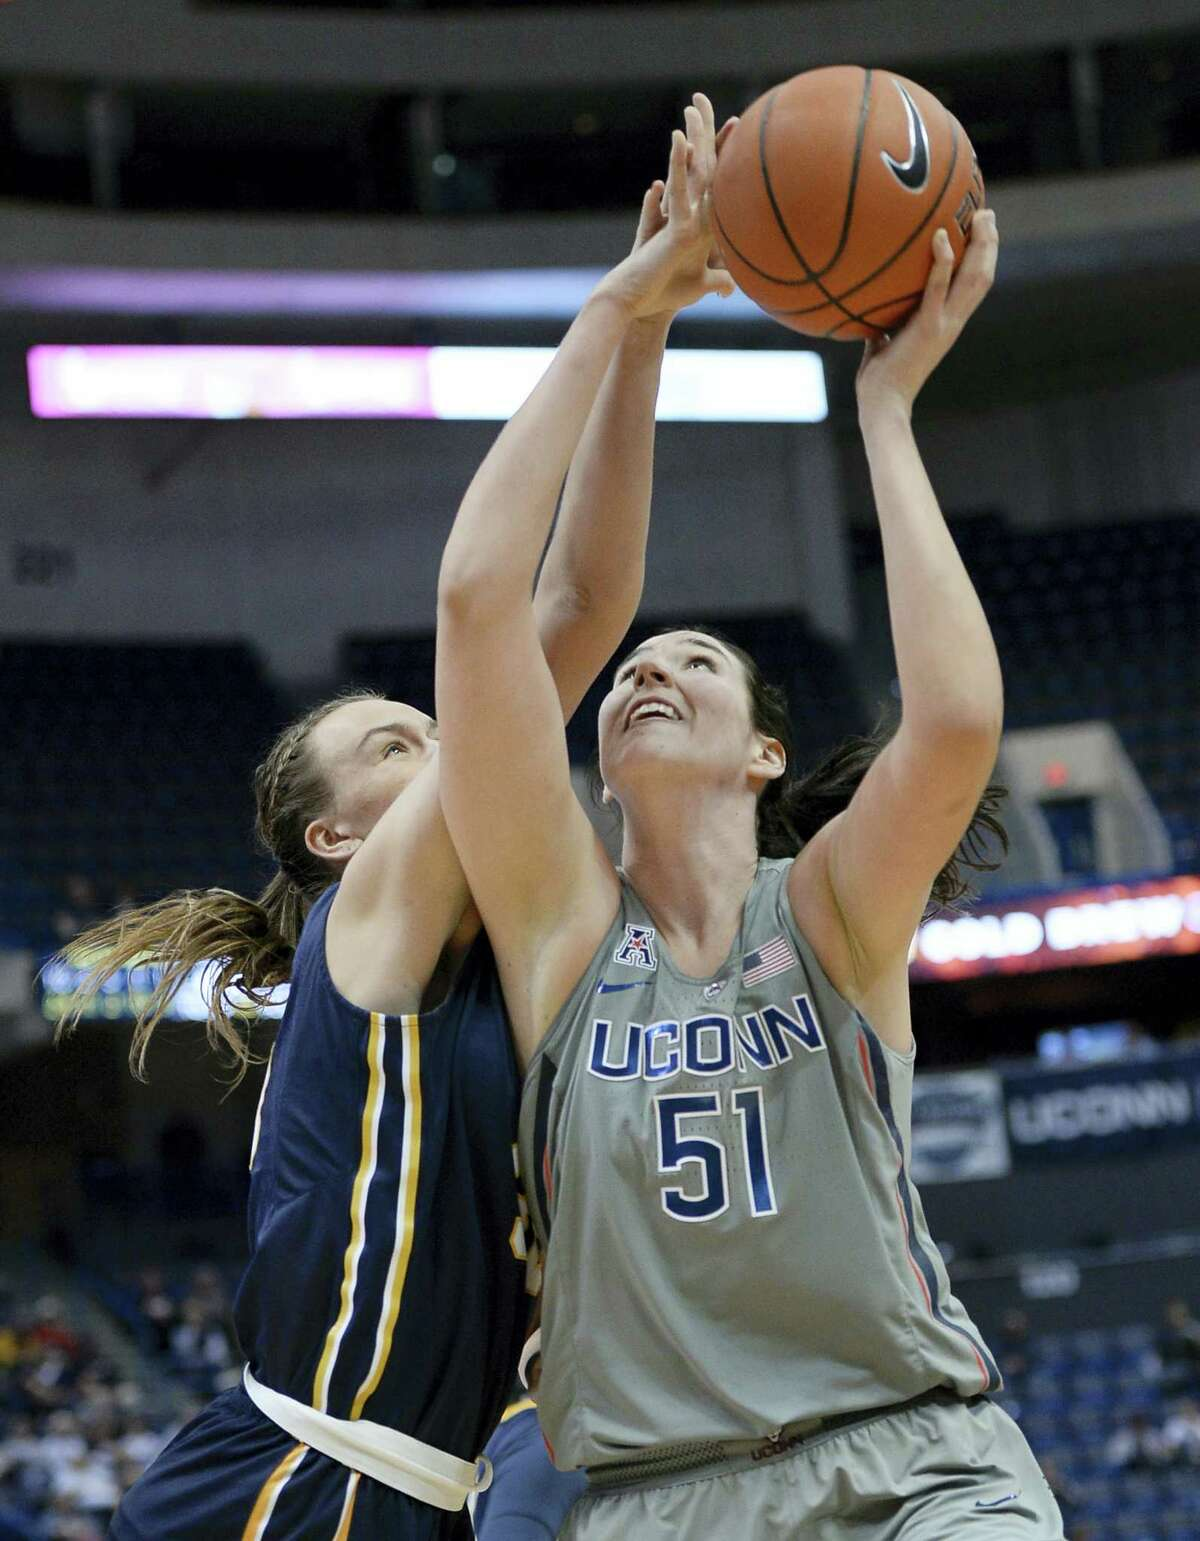 Connecticut's Natalie Butler shoots as Pace's Kirsten Dodge, left, defends in the second half of a preseason NCAA college basketball game, Sunday, Nov. 6, 2016, in Hartford, Conn. (AP Photo/Jessica Hill)